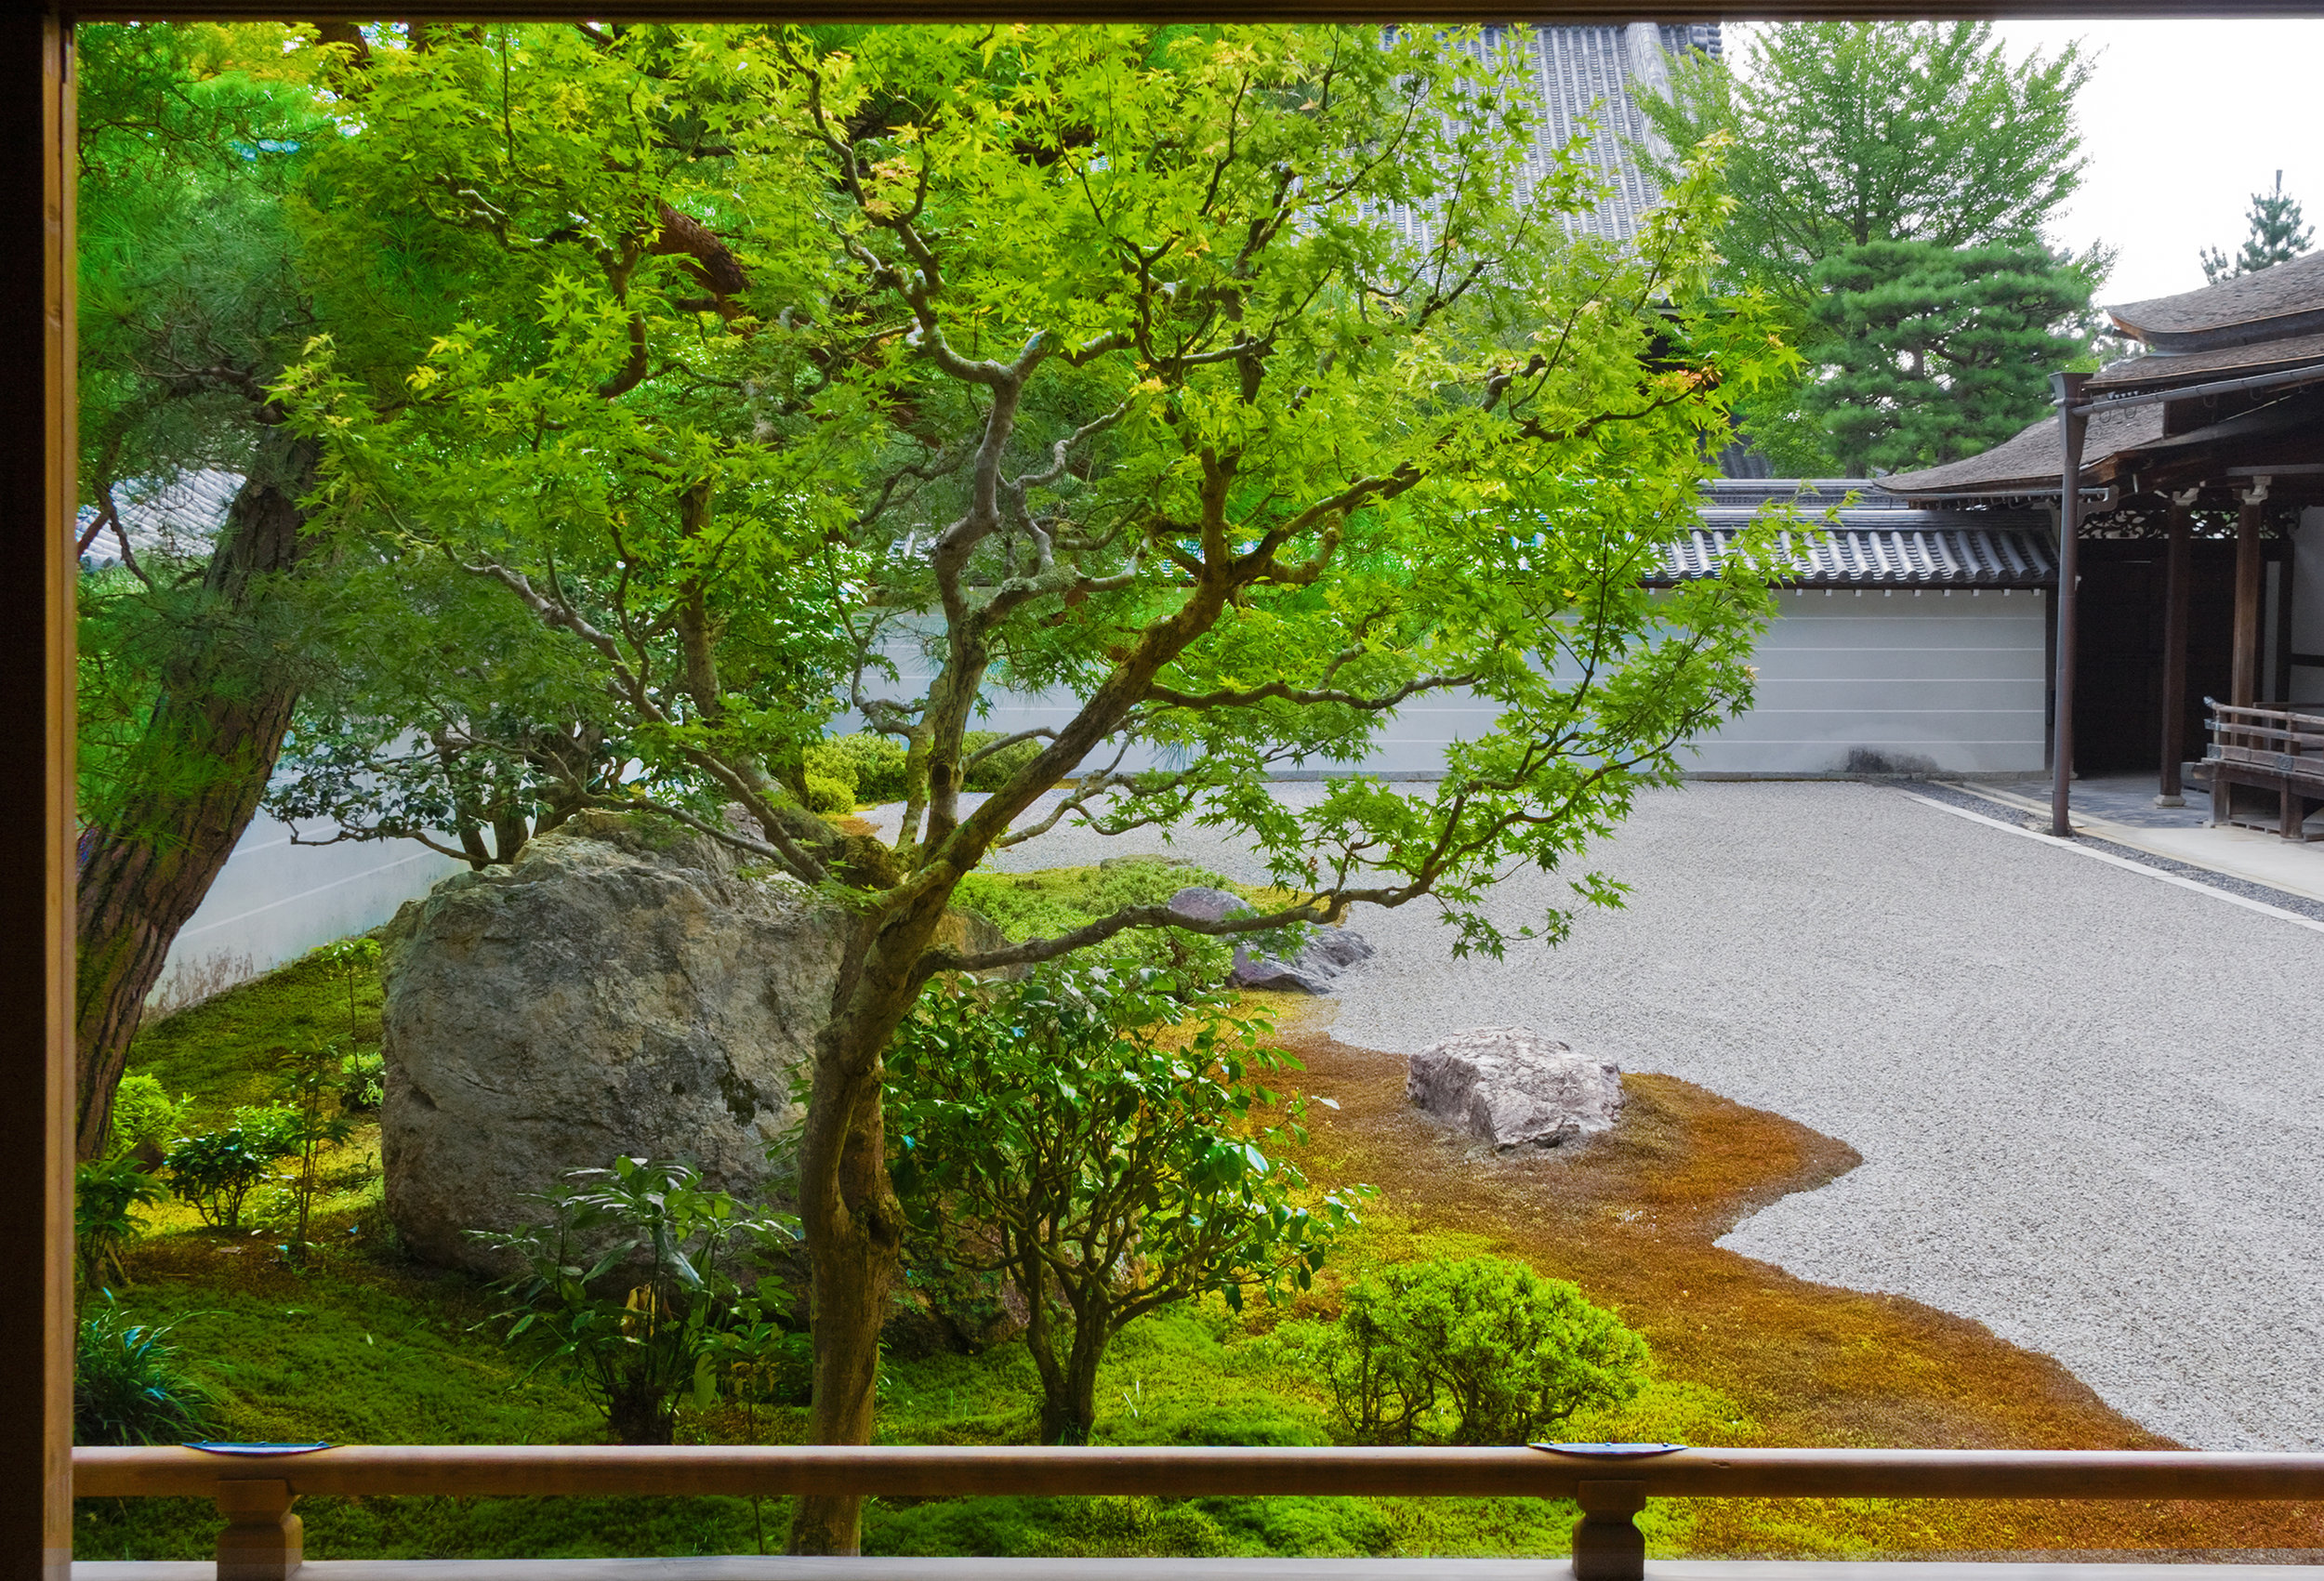 mirena-rhee-book-photographs-poems-japanese-gardens-a-journey-into-zen_05.jpg